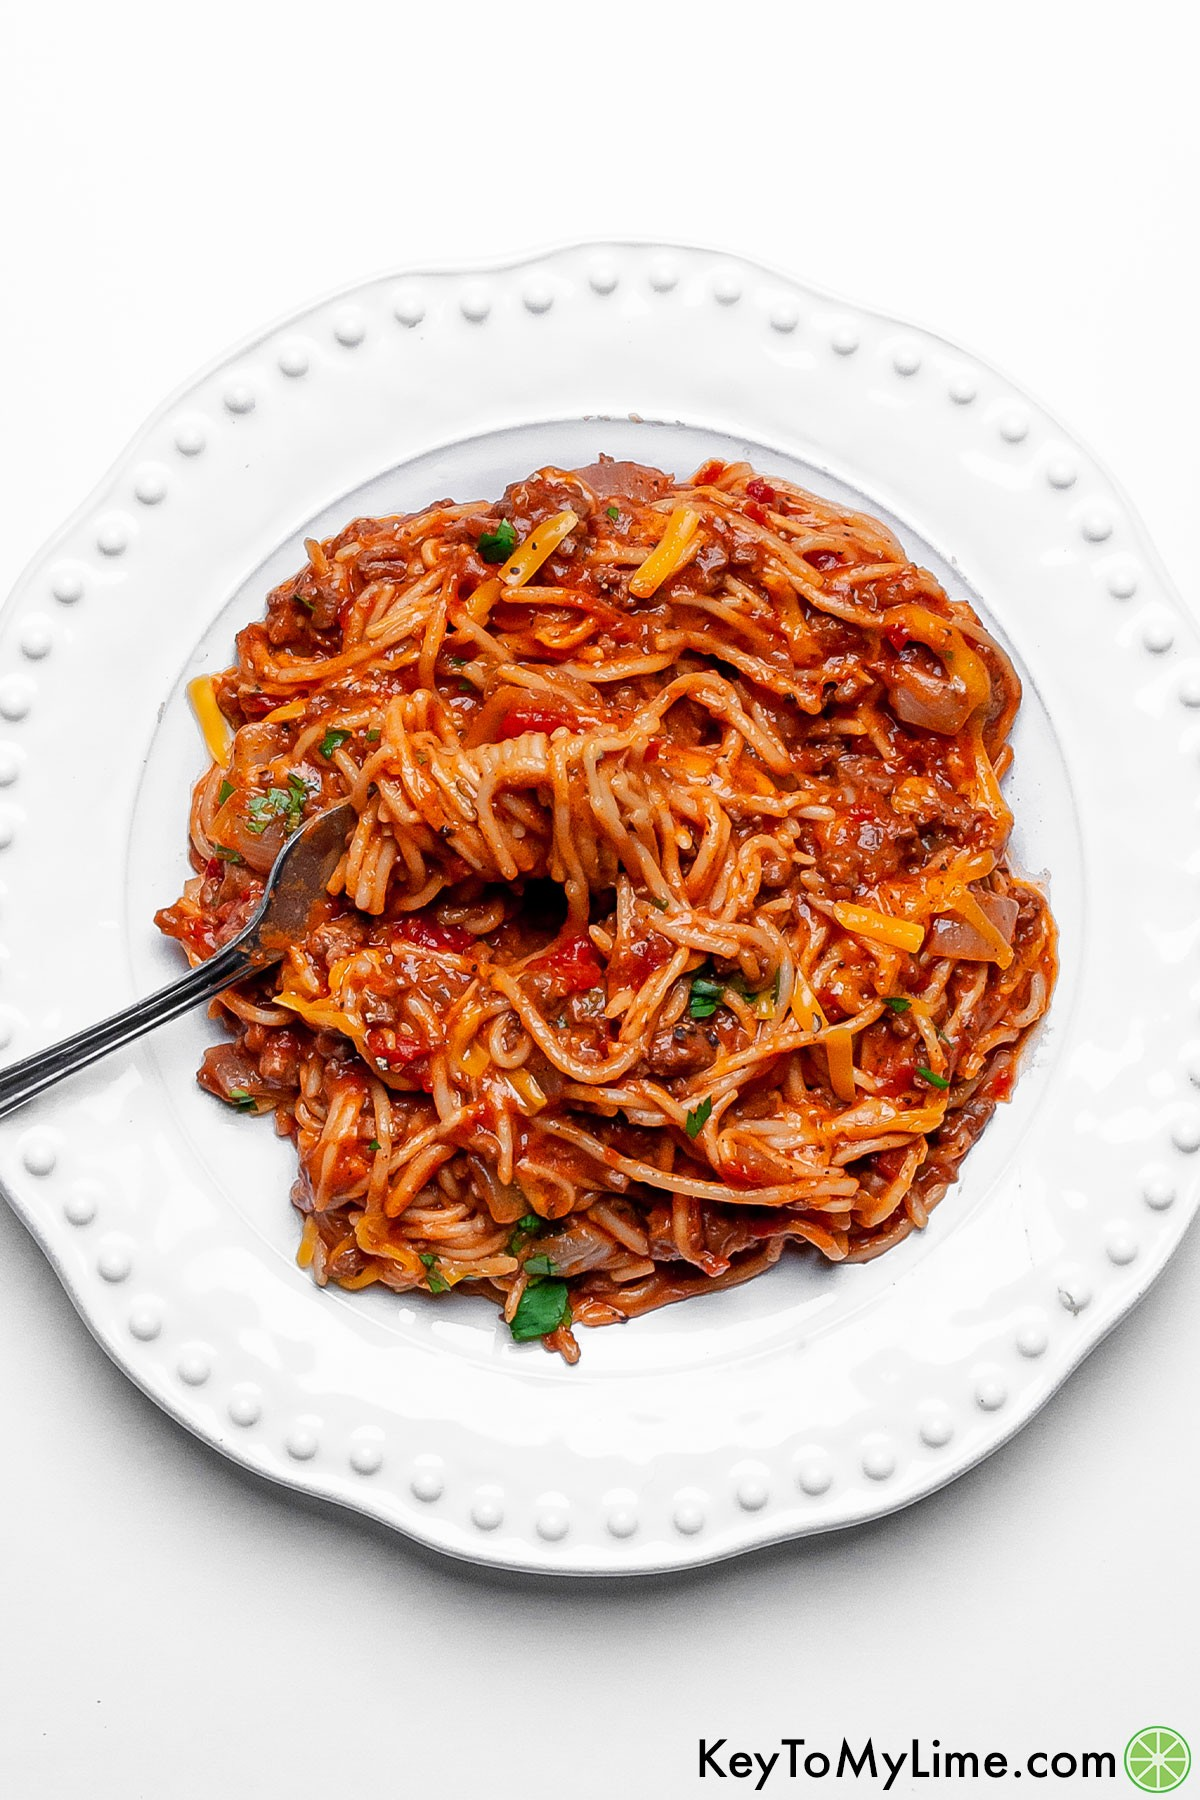 A serving of Mexican spaghetti on a plate with a fork.